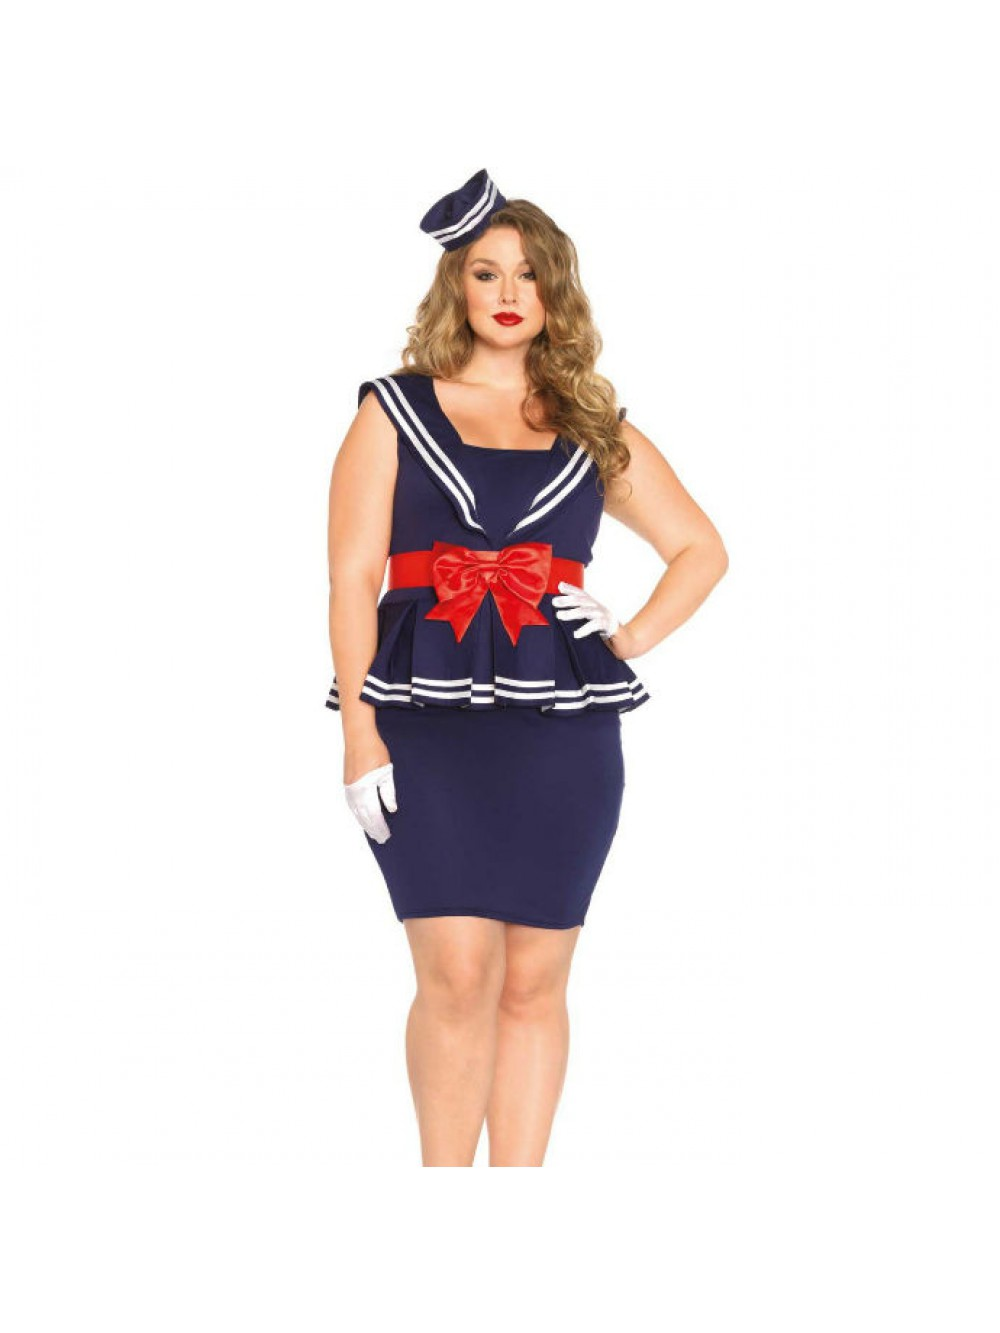 LEG AVENUE AYE AYE SAILOR AMY PLUS SIZE 1X/2X